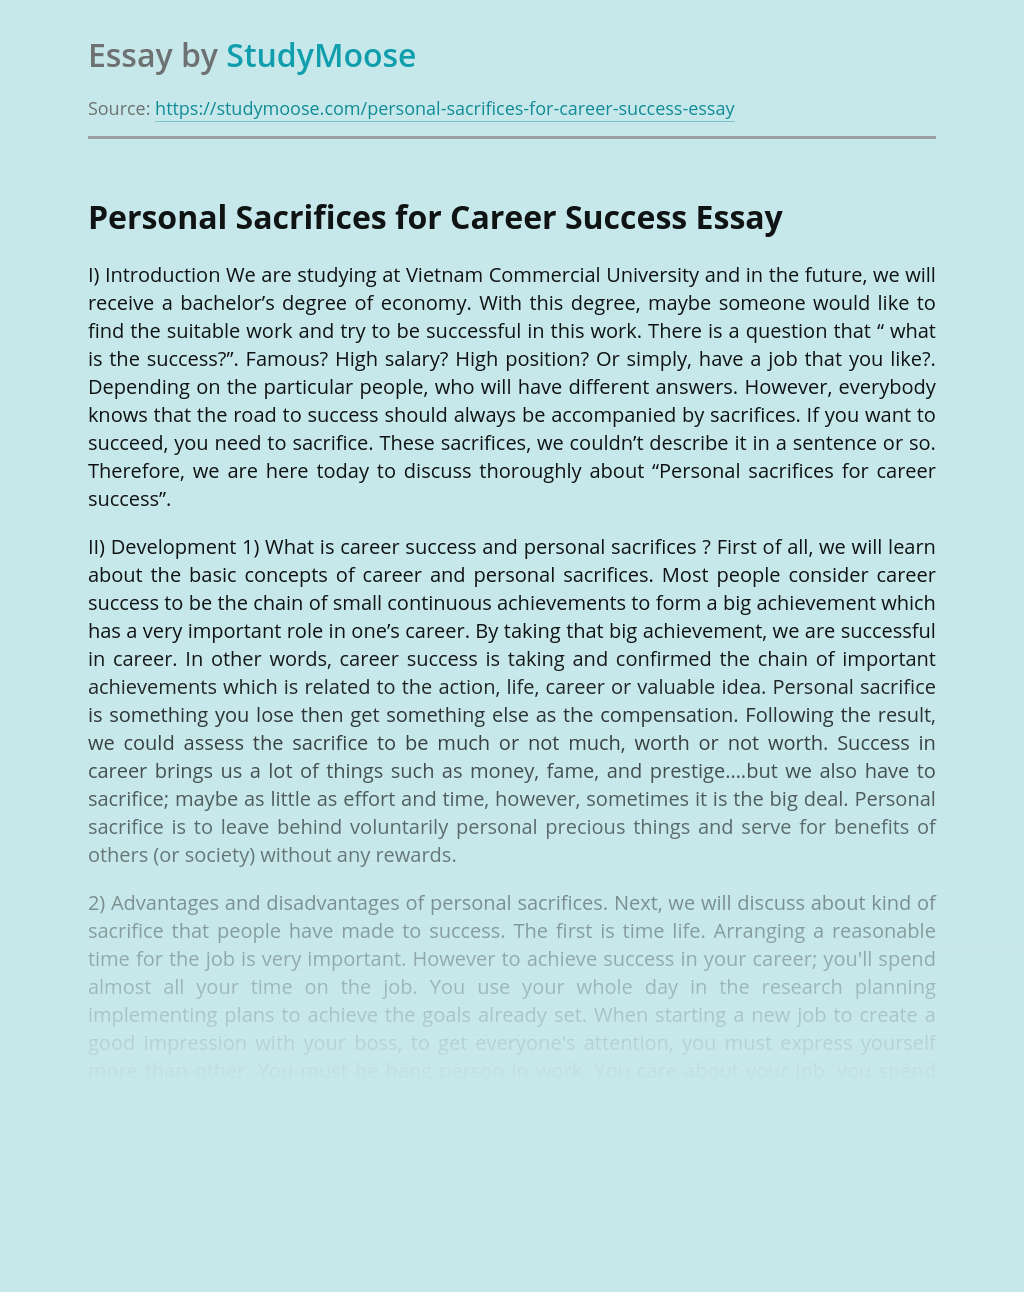 Personal Sacrifices for Career Success